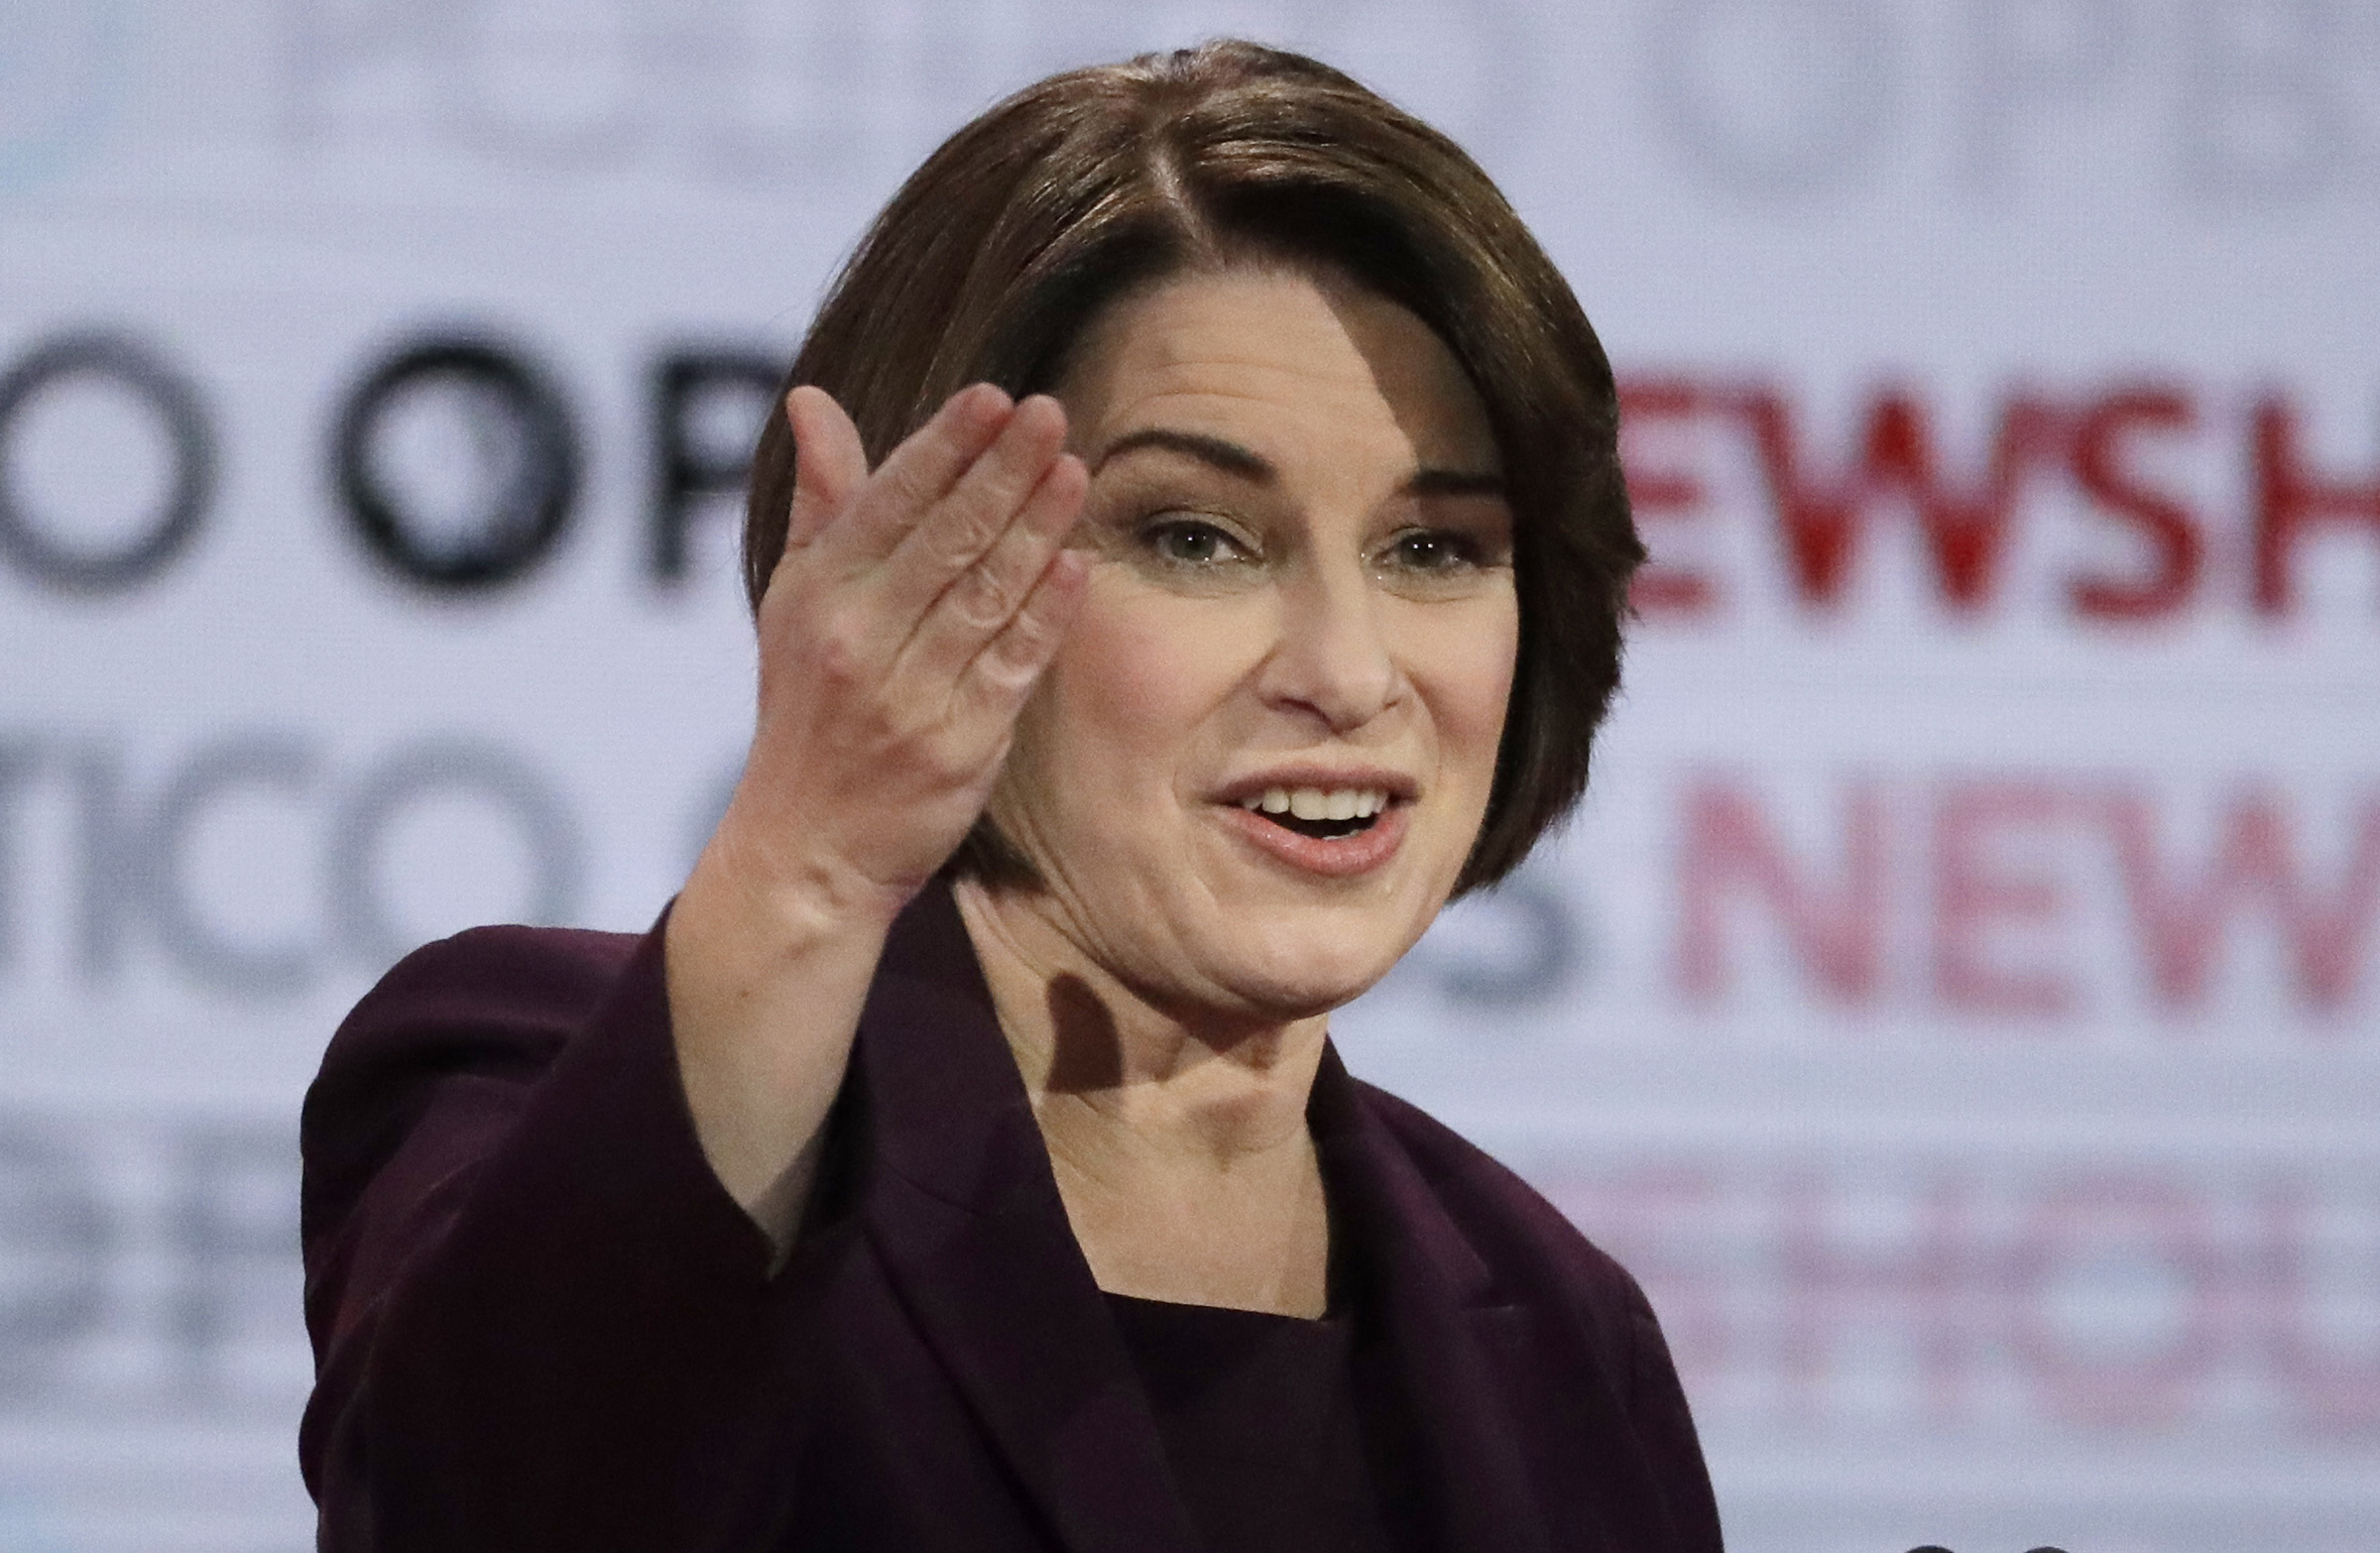 Democratic presidential candidate Sen. Amy Klobuchar, D-Minn., speaks during a Democratic presidential primary debate in Los Angeles on Dec. 19, 2019.